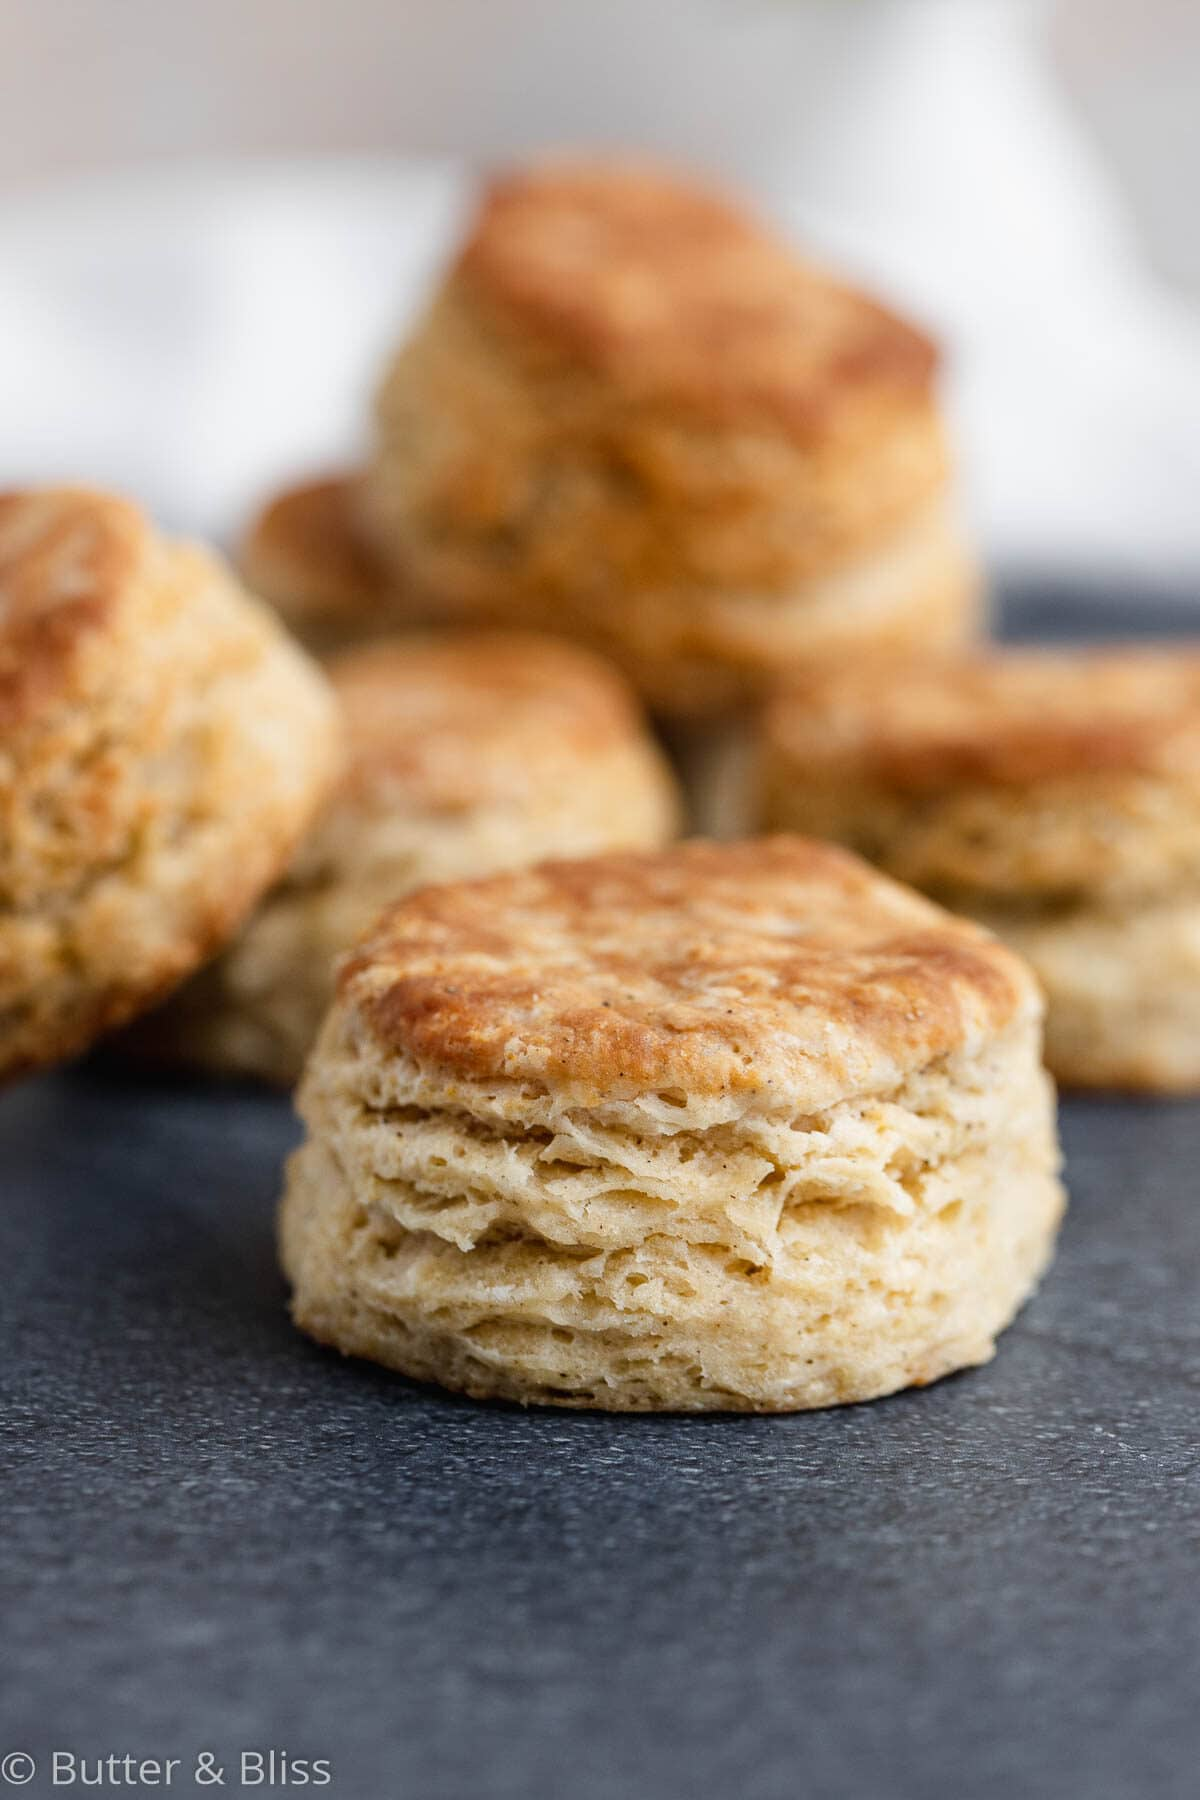 Homemade buttermilk biscuit on a table